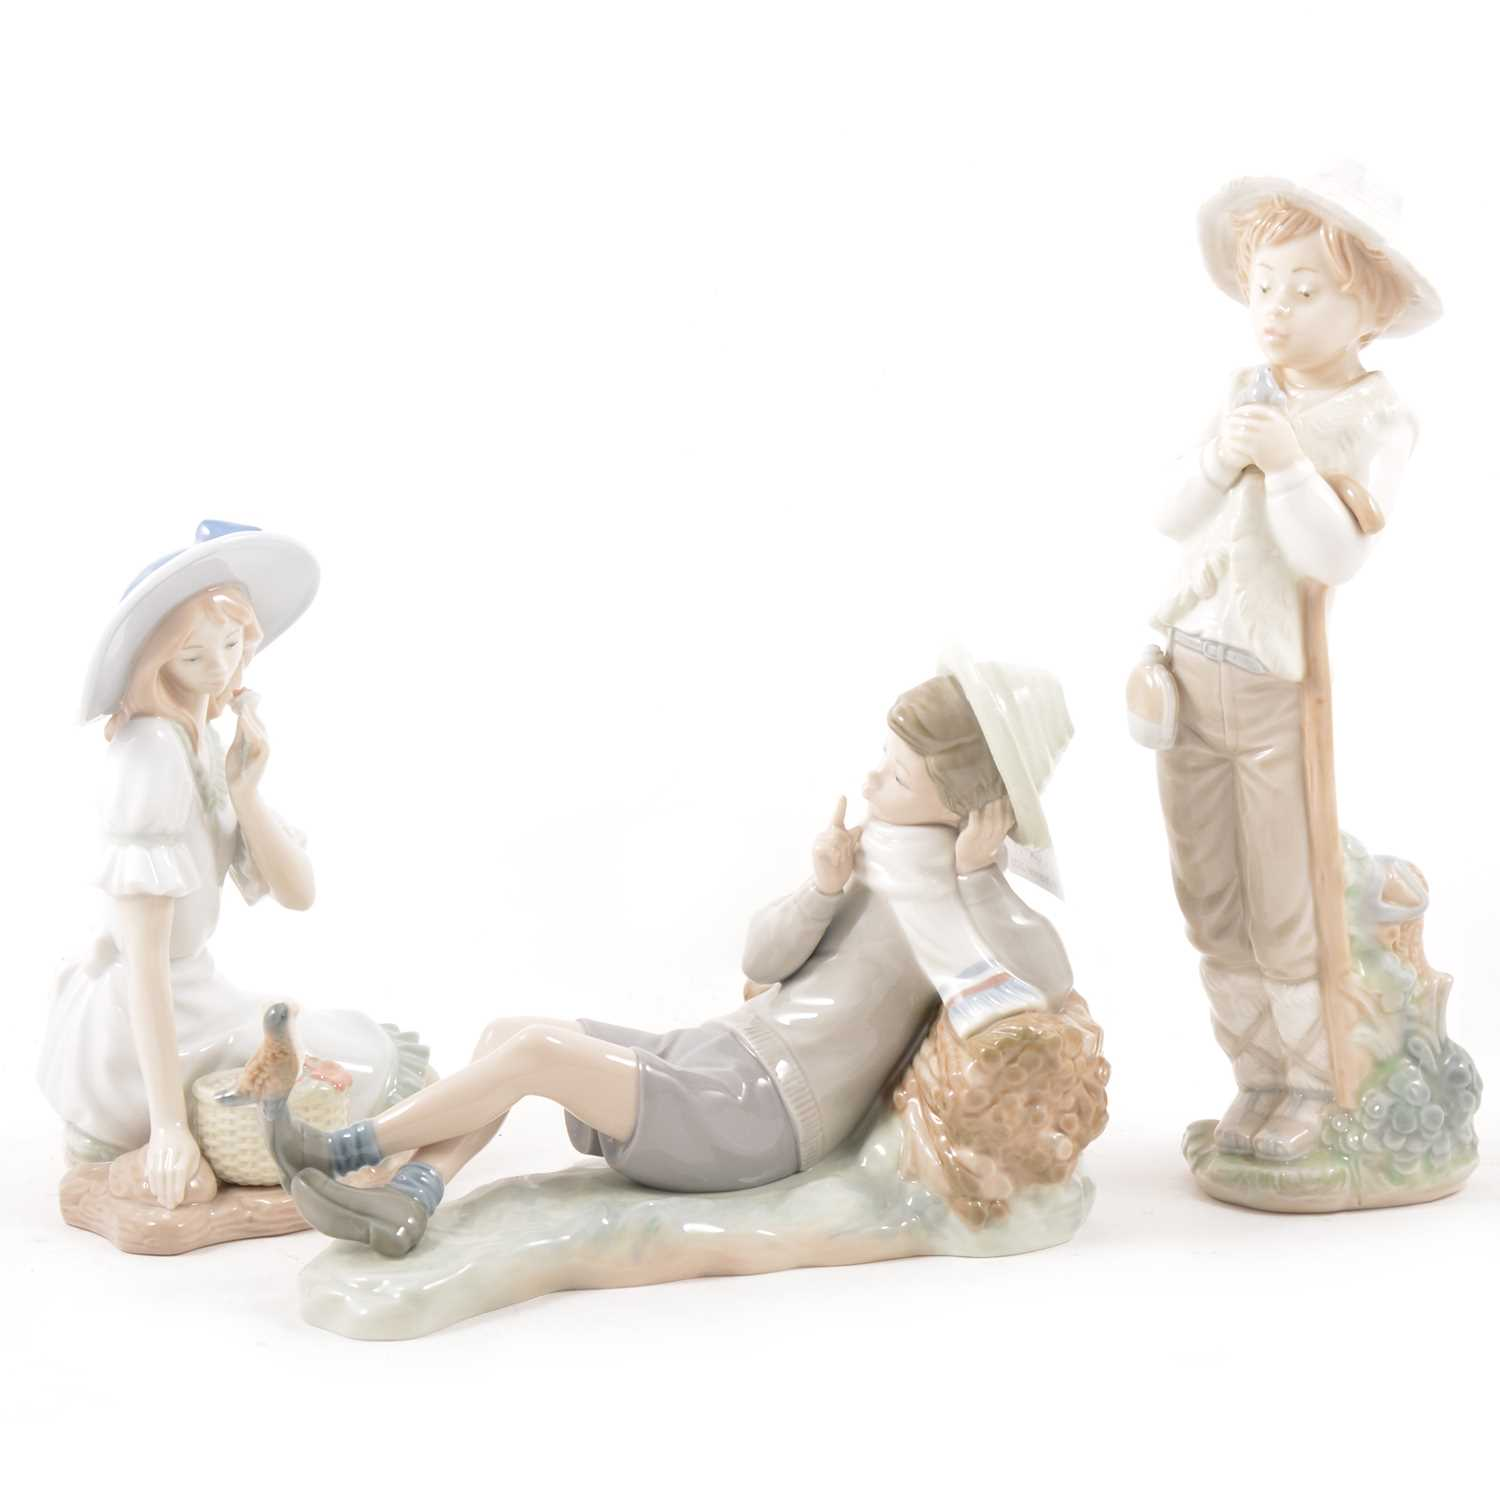 Lot 42 - A Lladro porcelain figure and two Nao porcelain figures